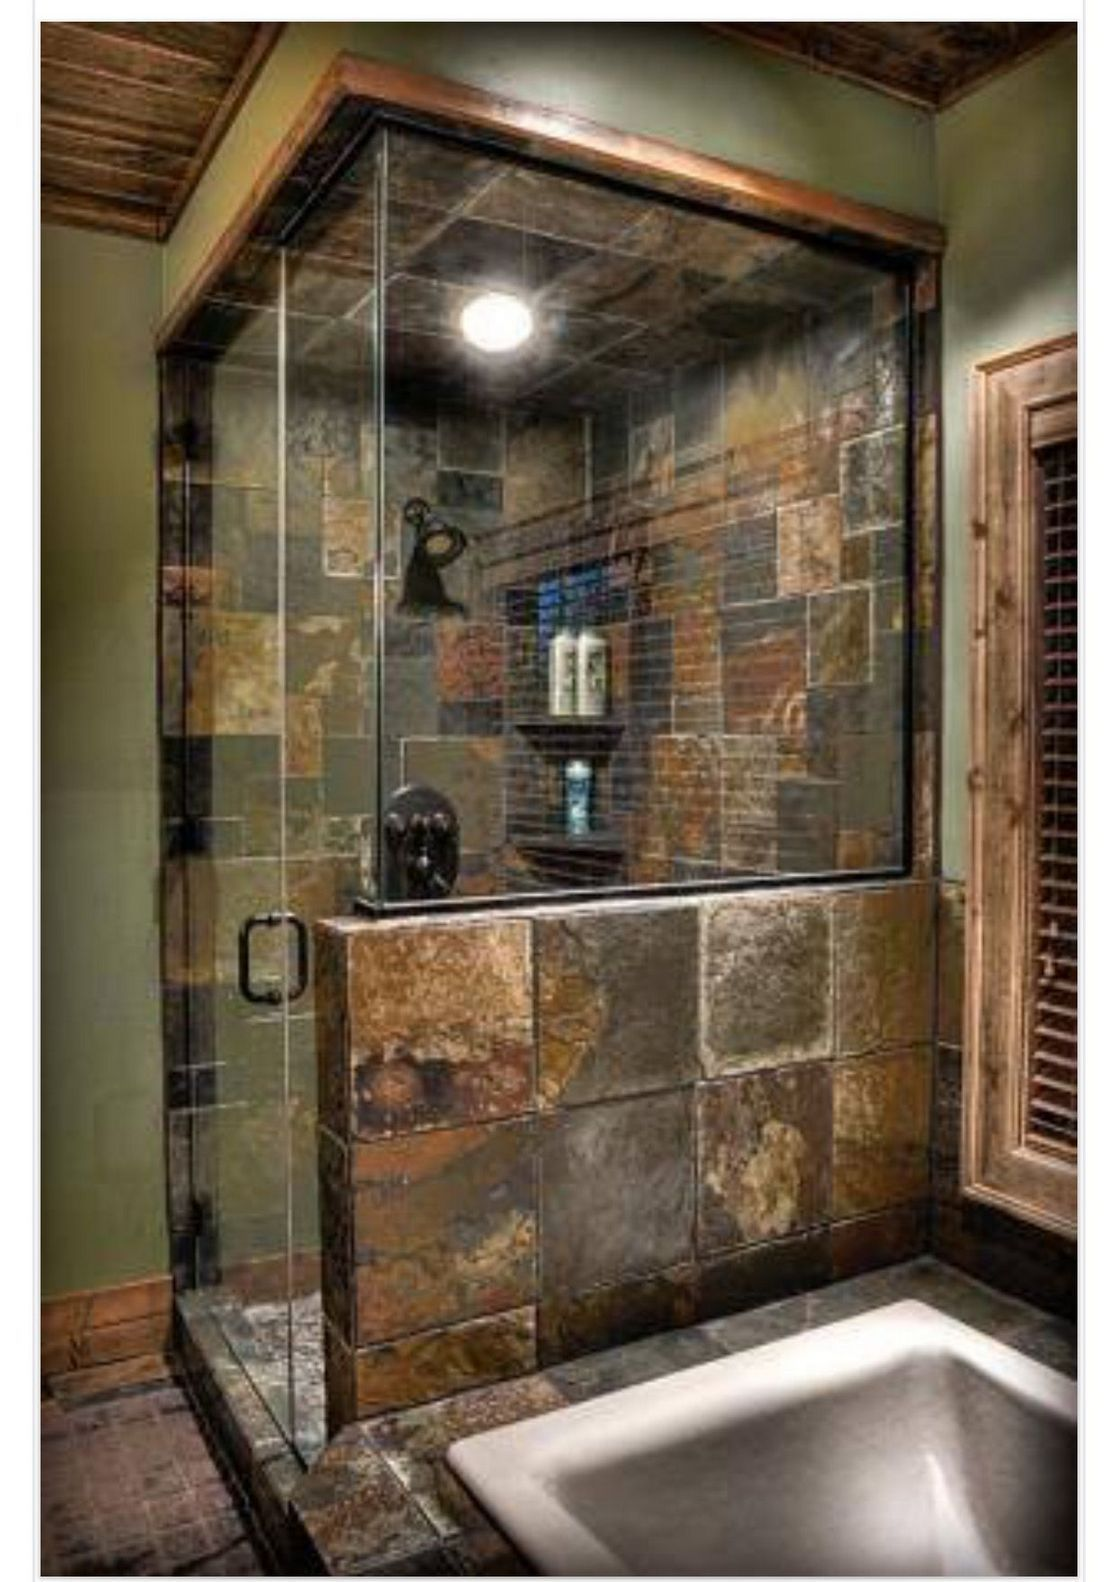 50+ Dramatic Rustic Bathroom Design IDeas #rusticbathroomdesigns